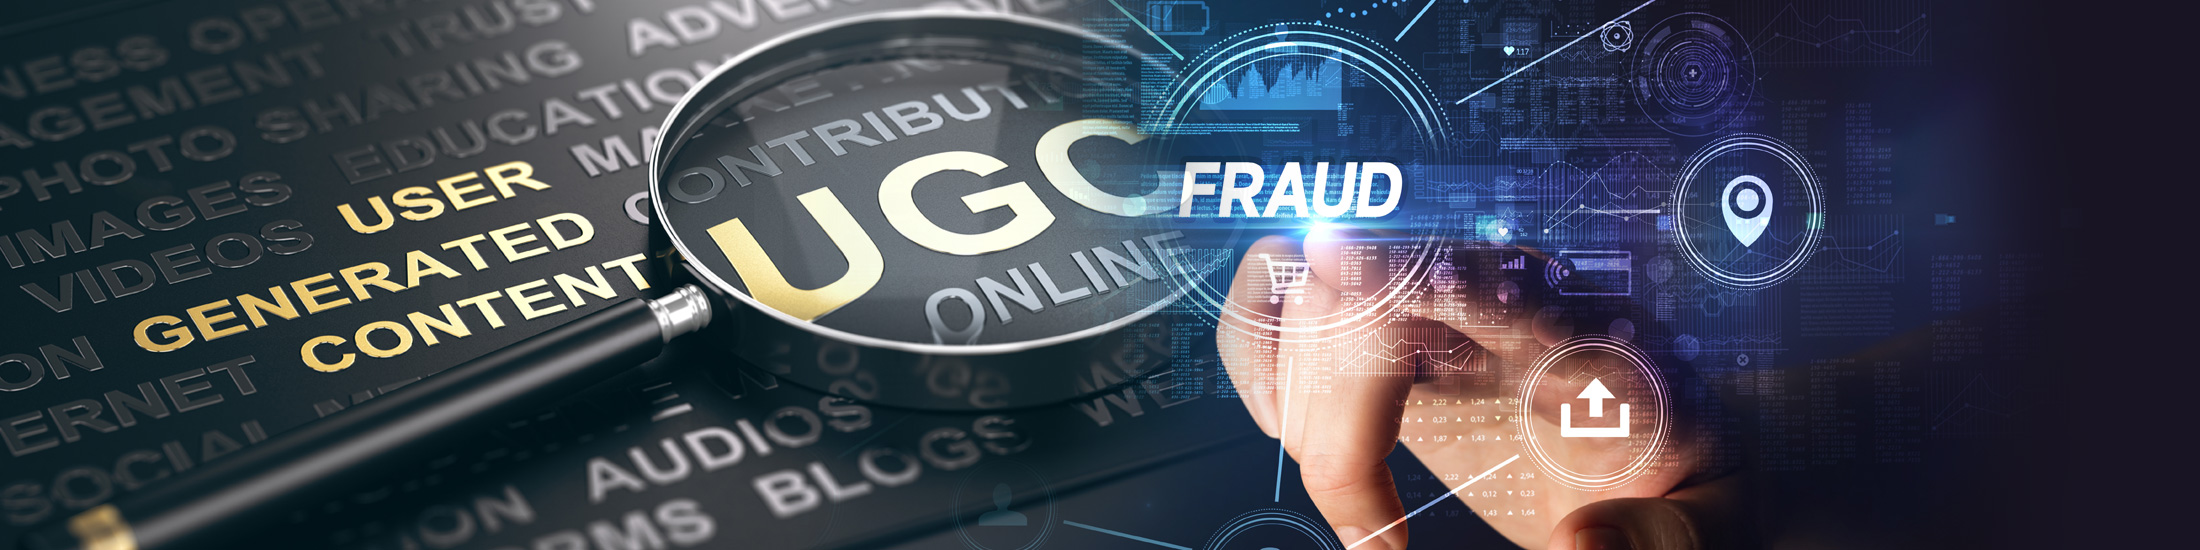 Report: User Generated Content Increasingly the Source of Information Leveraged by Fraudsters